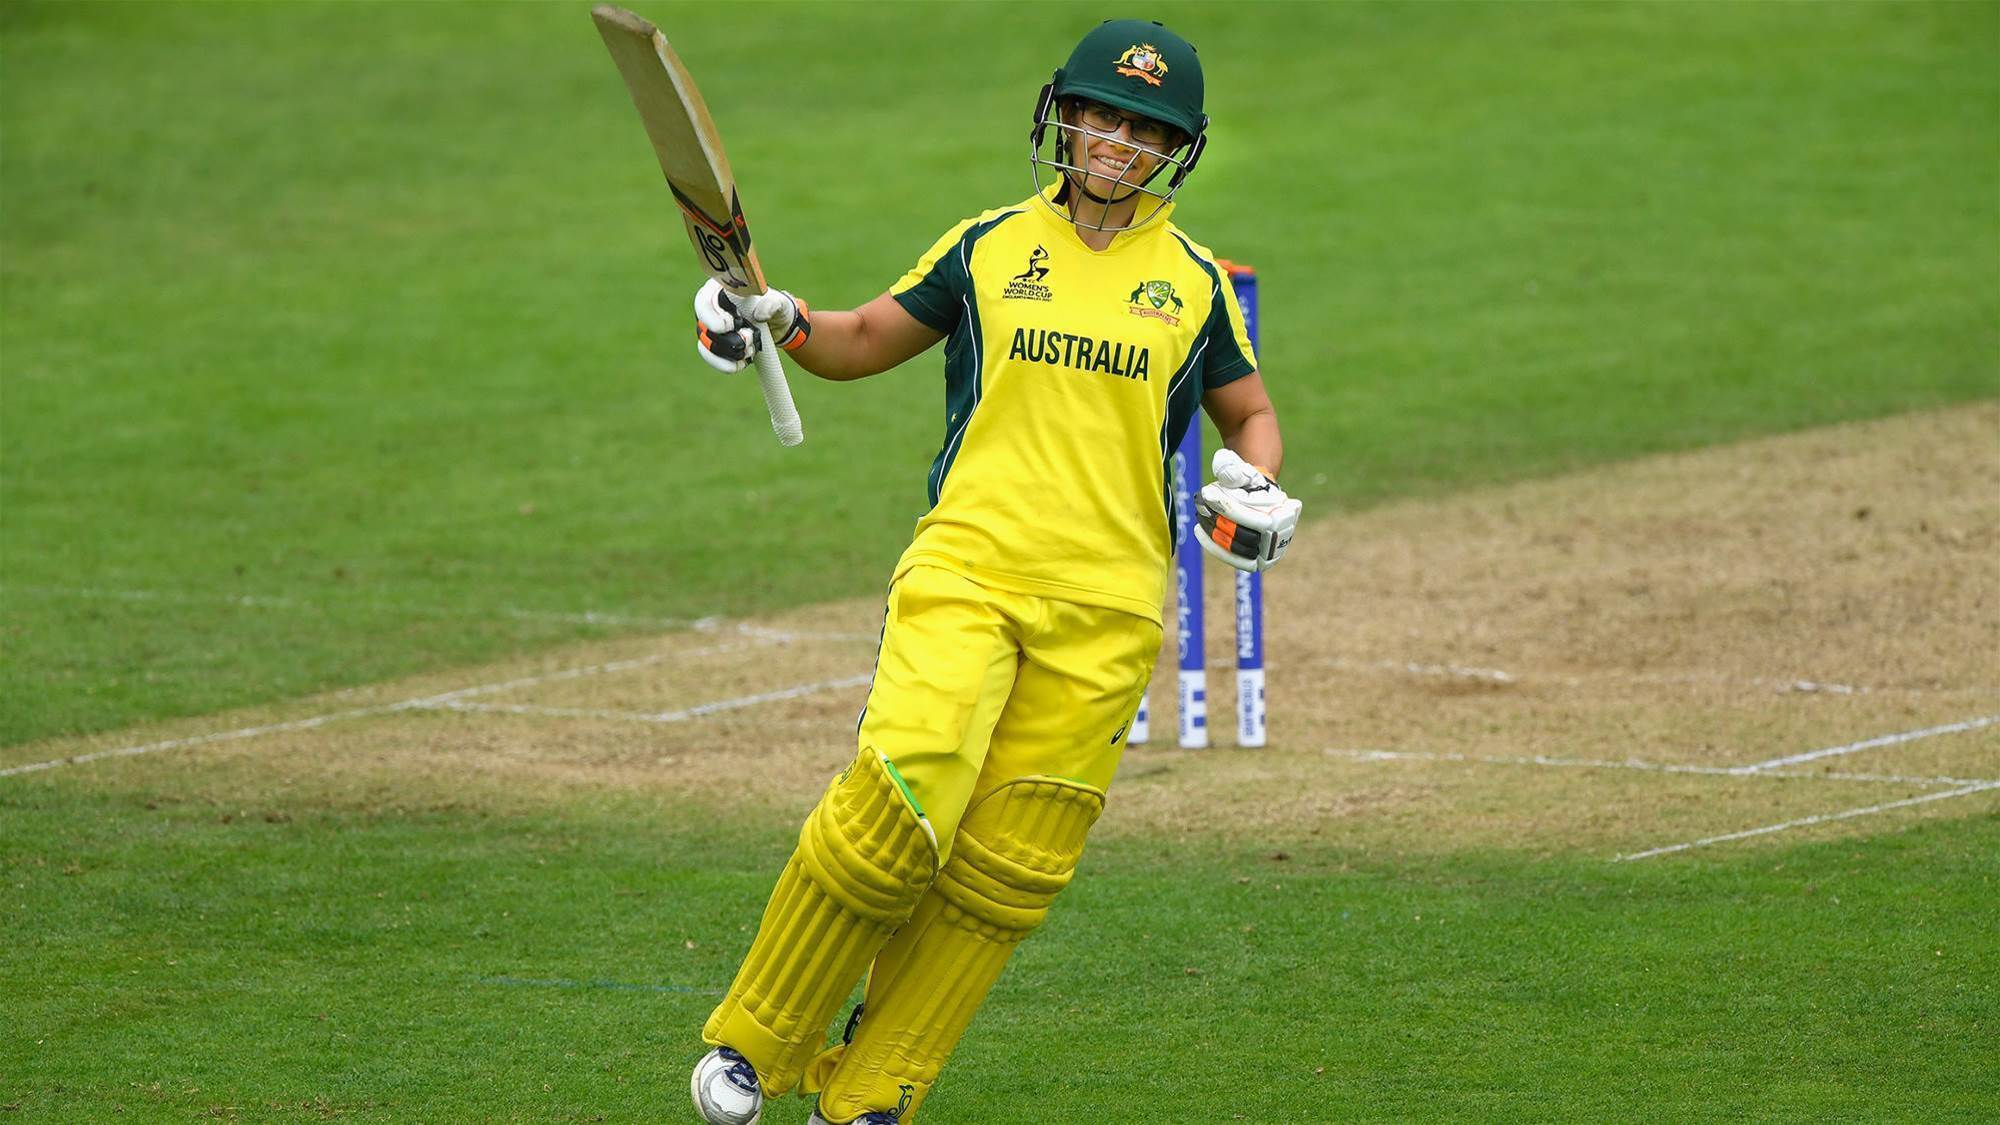 Australia claim the Series with another comprehensive victory